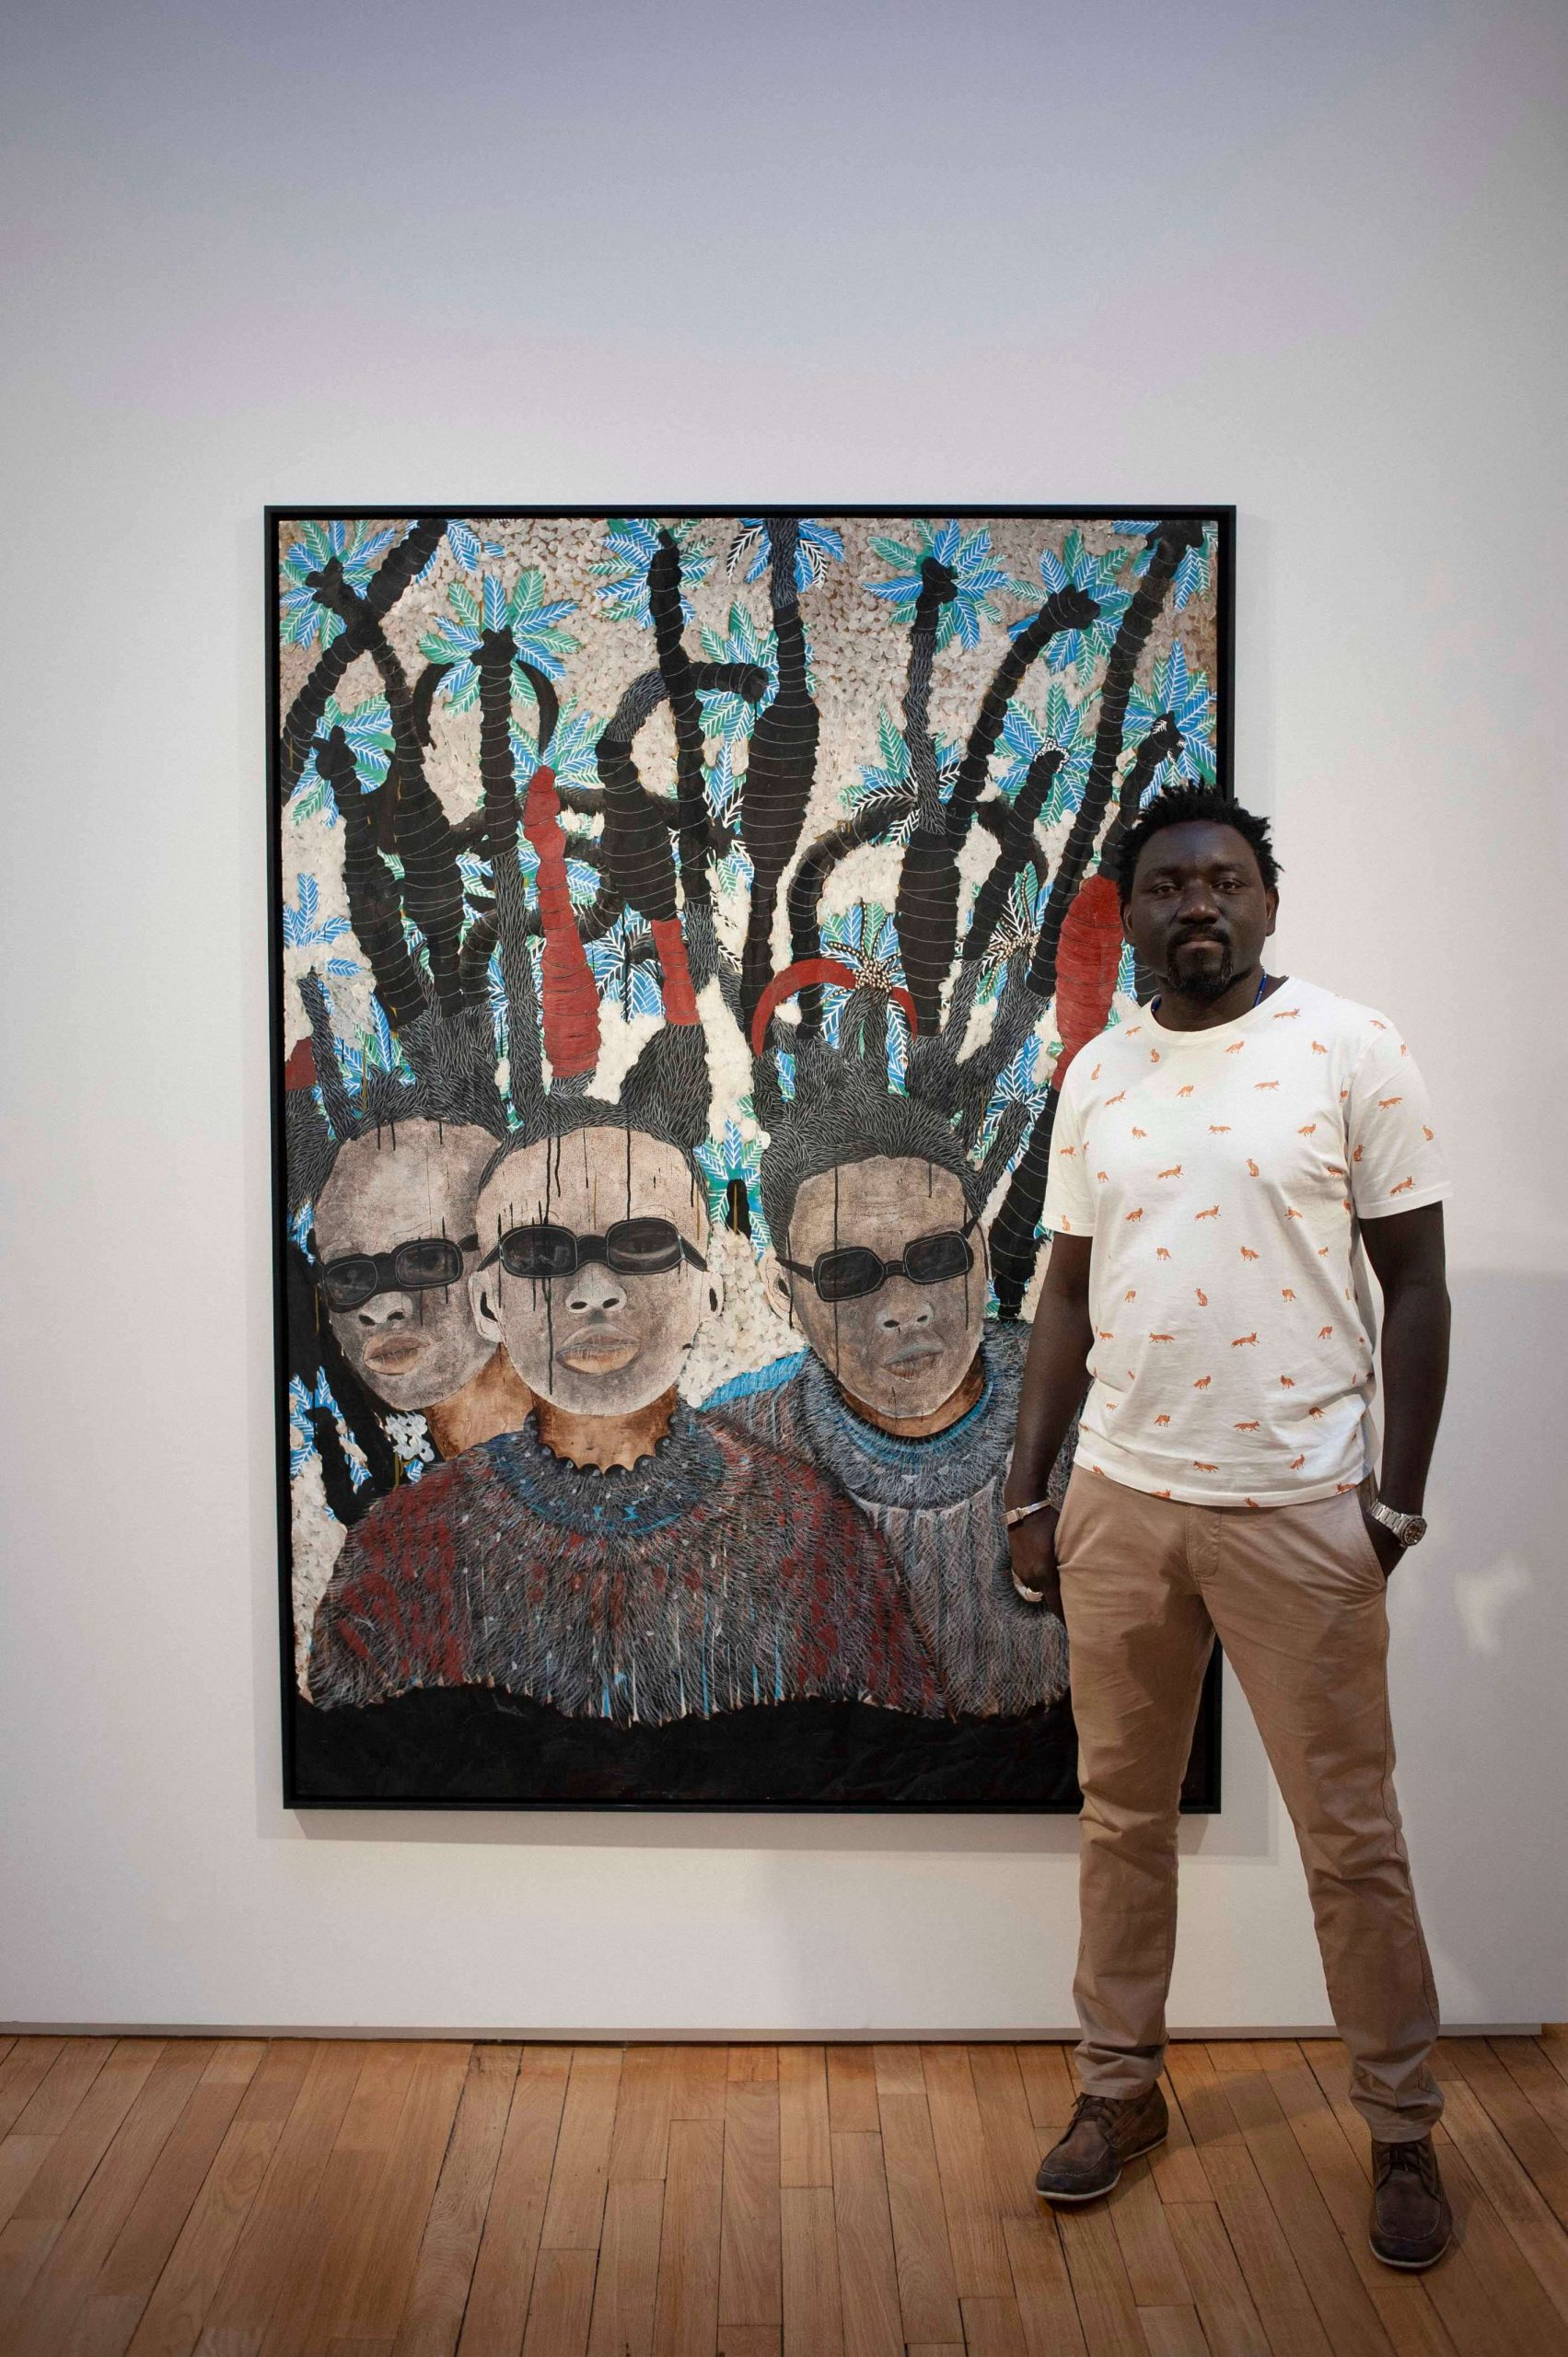 omar ba, thea chevalin, art and about africa, contemporary african art, artmap, african art map, art map africa